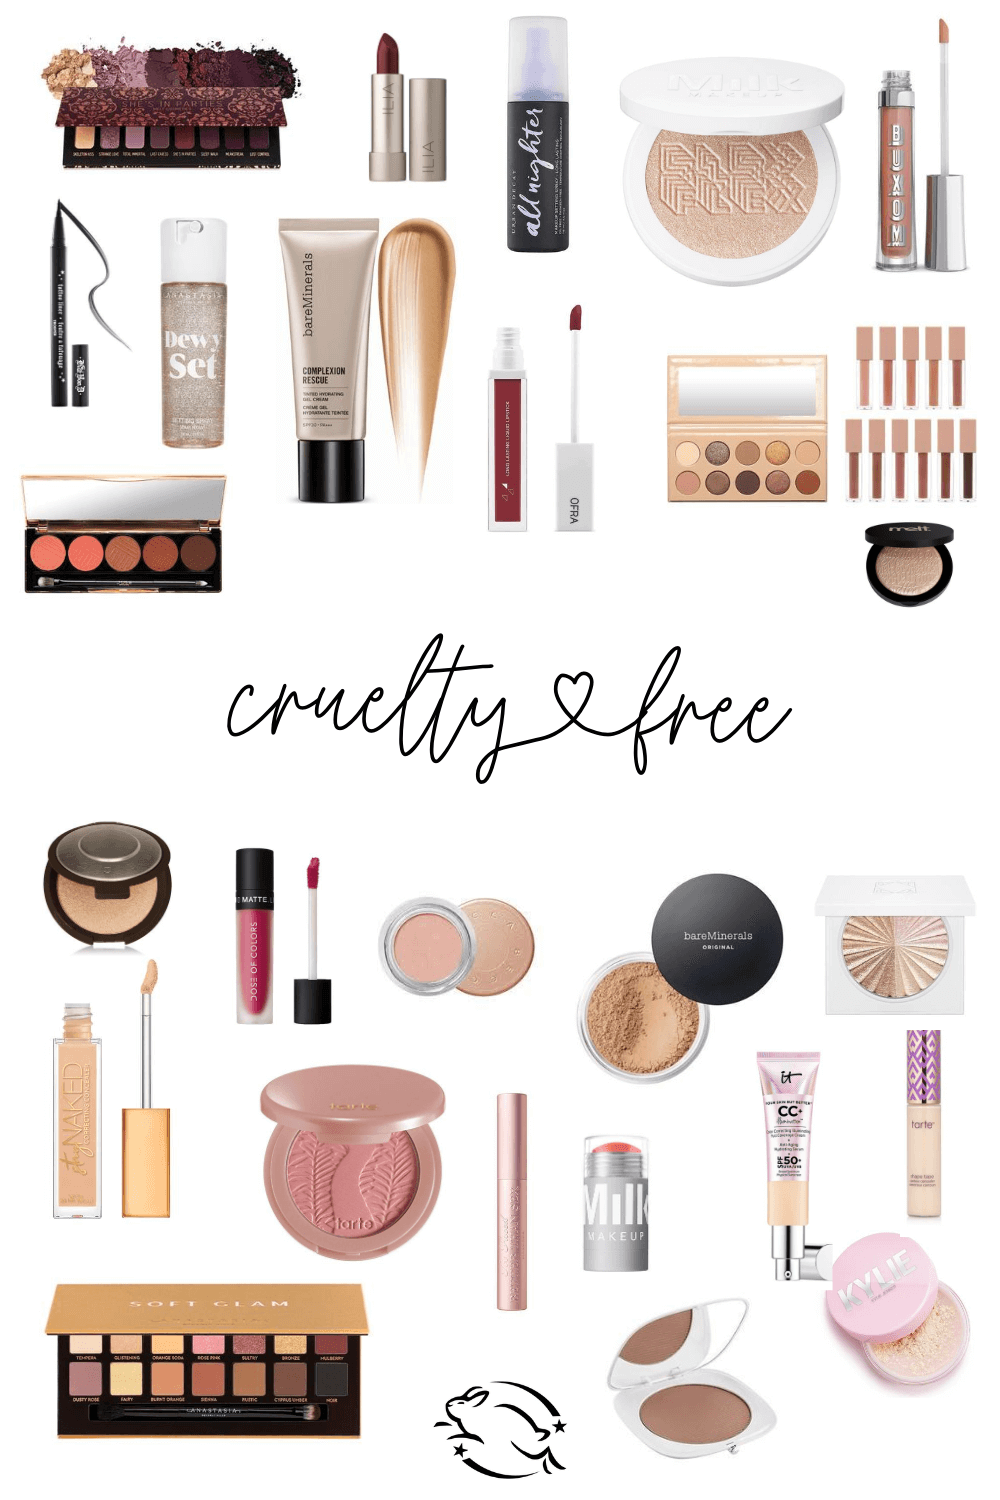 20 Amazing High-End Makeup Brands That Are Cruelty-Free ⋆ Beautymone